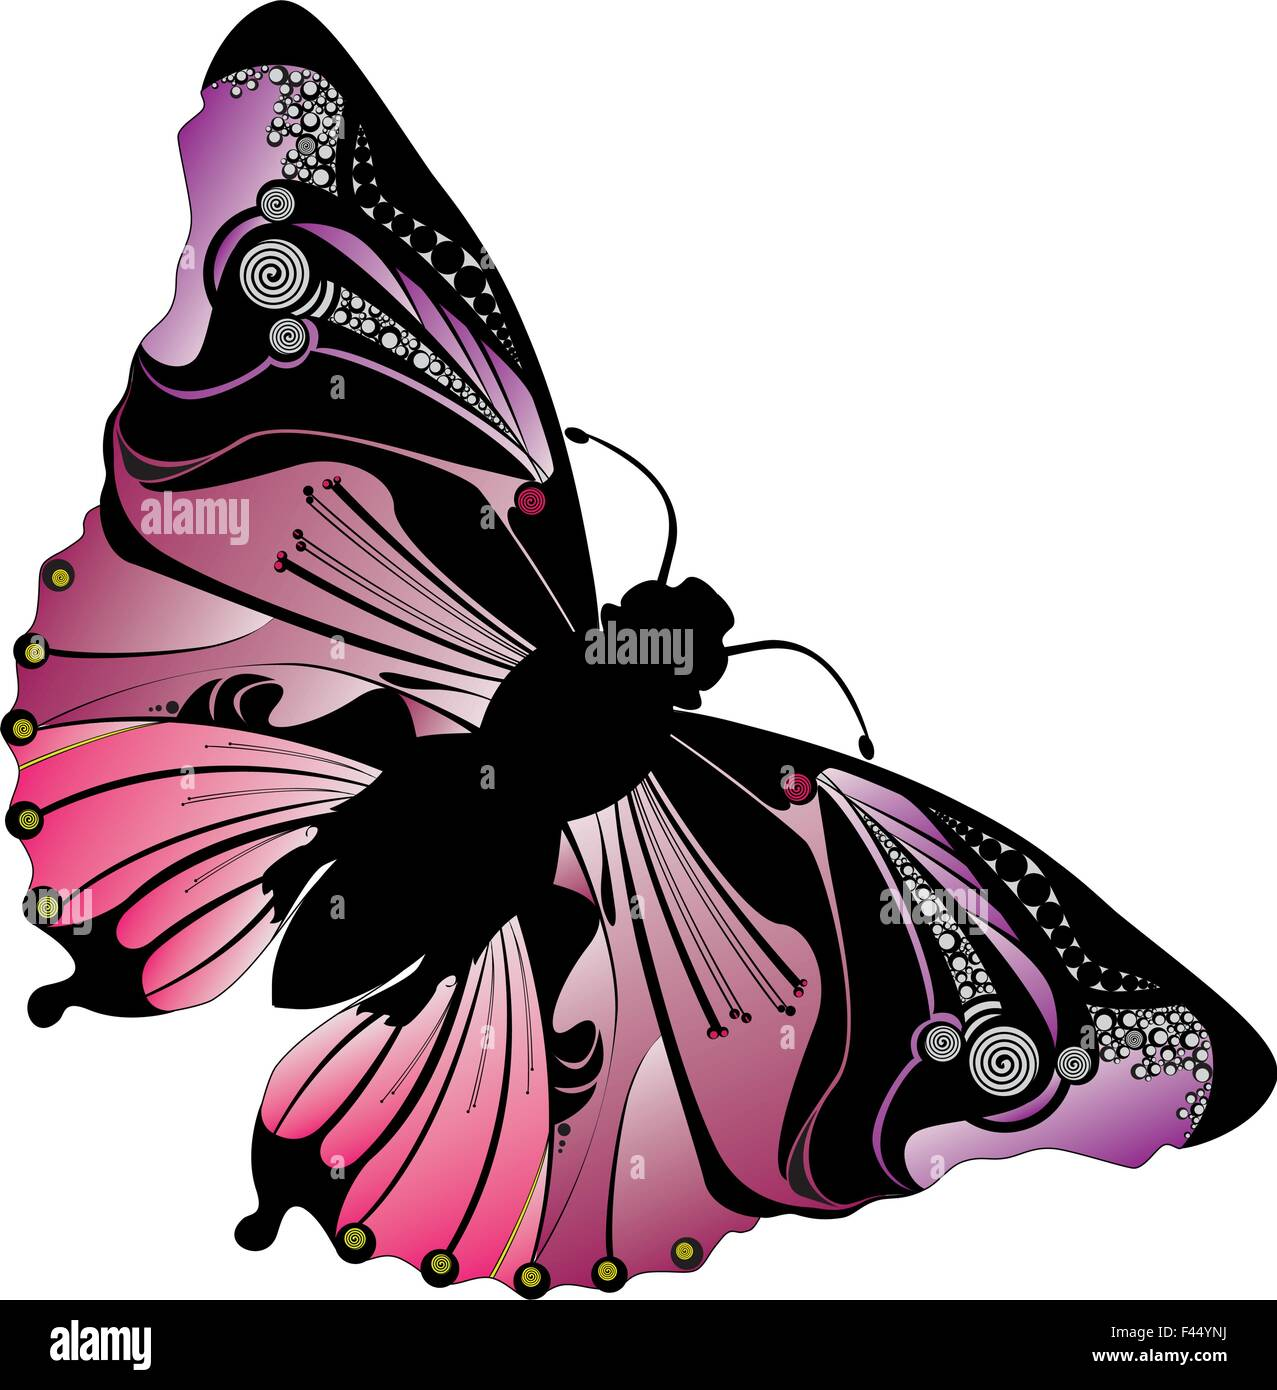 e5abc5e1 Pink art butterfly - Stock Image Pink art butterfly. Image ID: F44YNJ (RF).  Butterfly wings spread tribal design ...